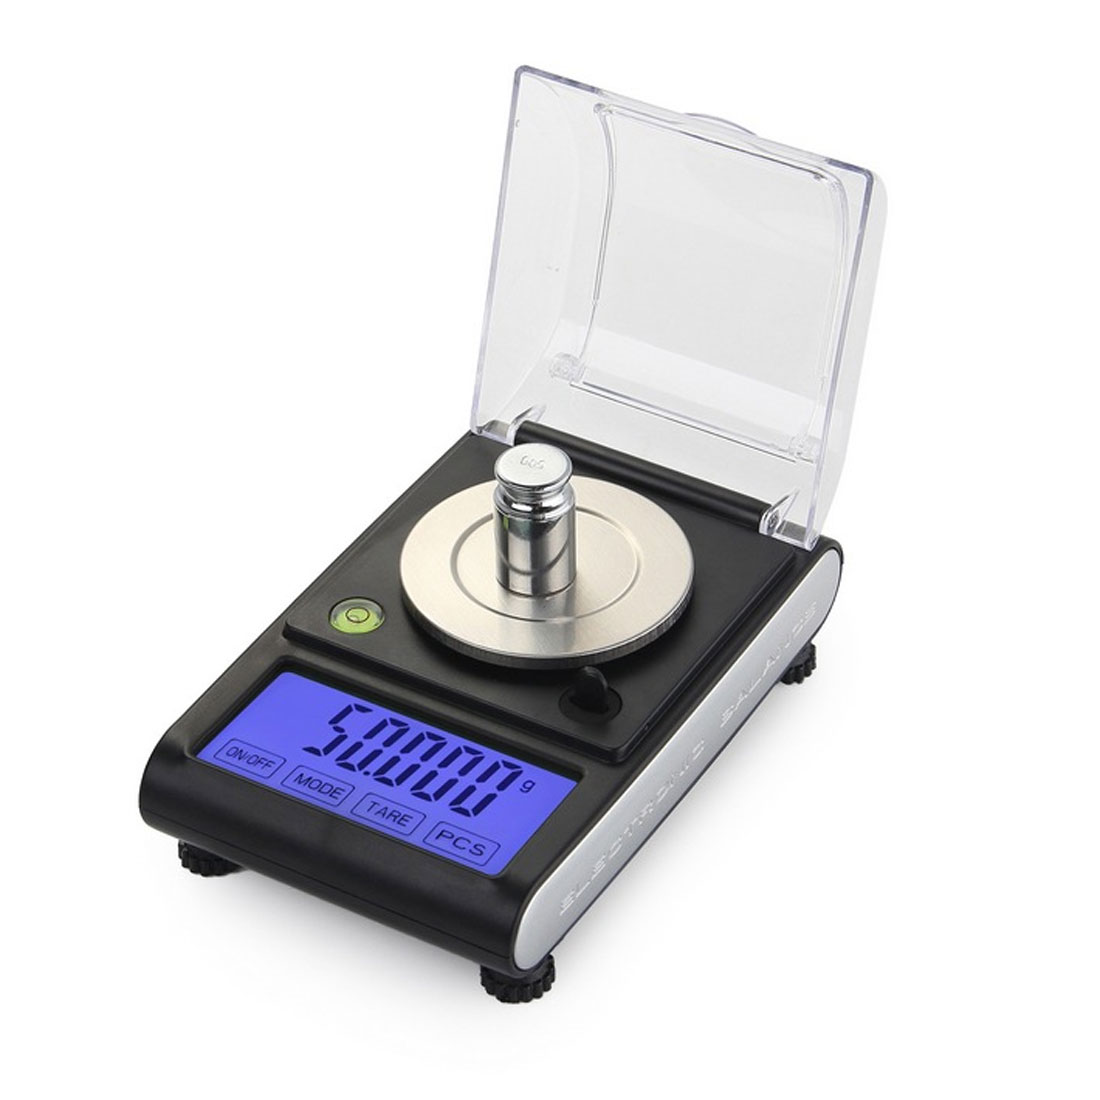 200g/300g/500g X 0.01g /0.1g Mini Electronic Scales Pocket Digital Scale For Gold Sterling Silver Jewelry Balance Gram Weight